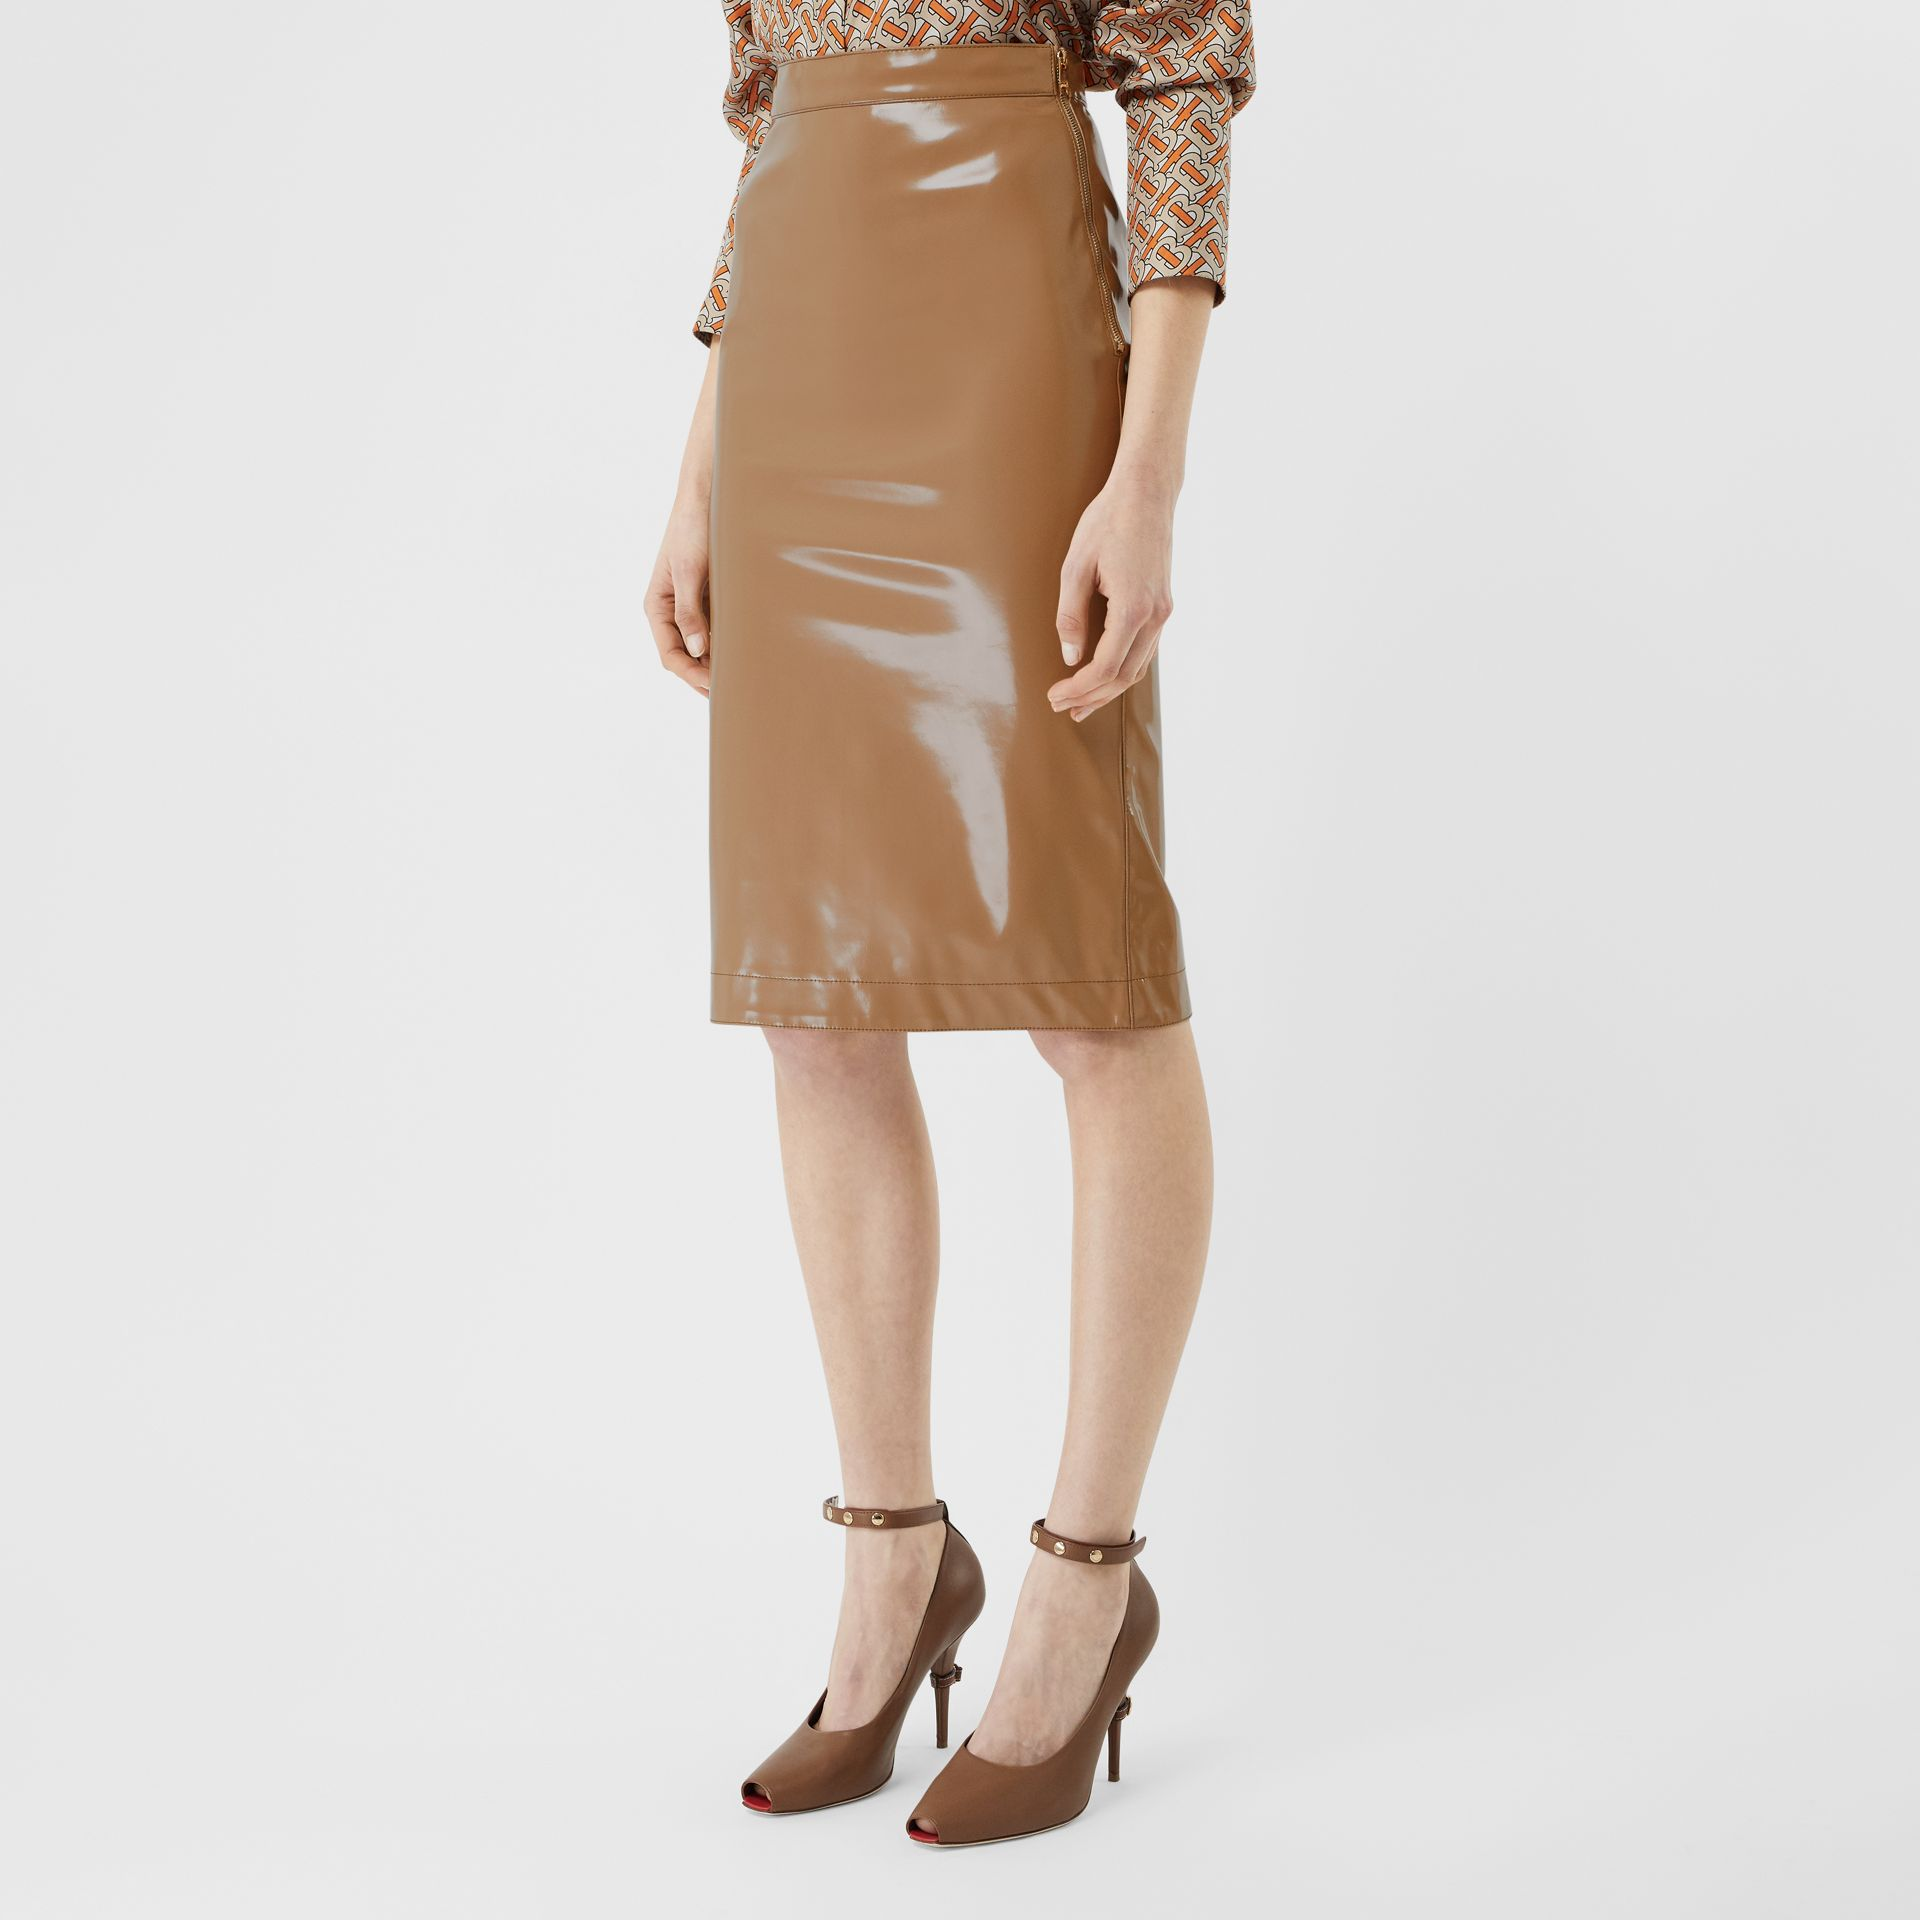 Vinyl Pencil Skirt in Utility Beige - Women | Burberry - gallery image 5